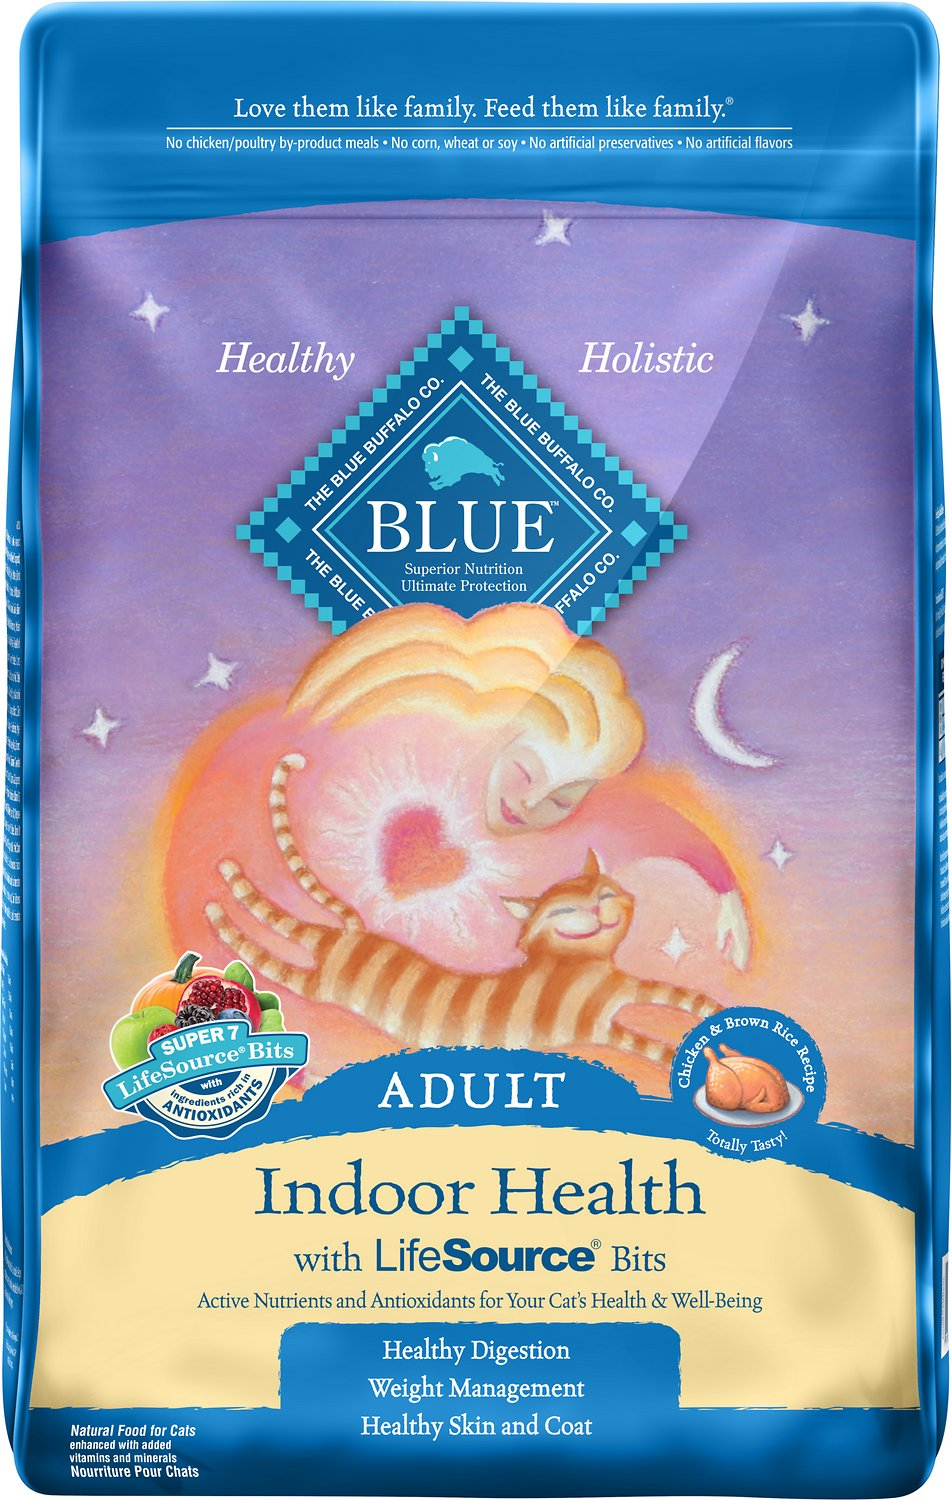 Blue Buffalo Indoor Health Chicken & Brown Rice Recipe Adult Dry Cat Food Image